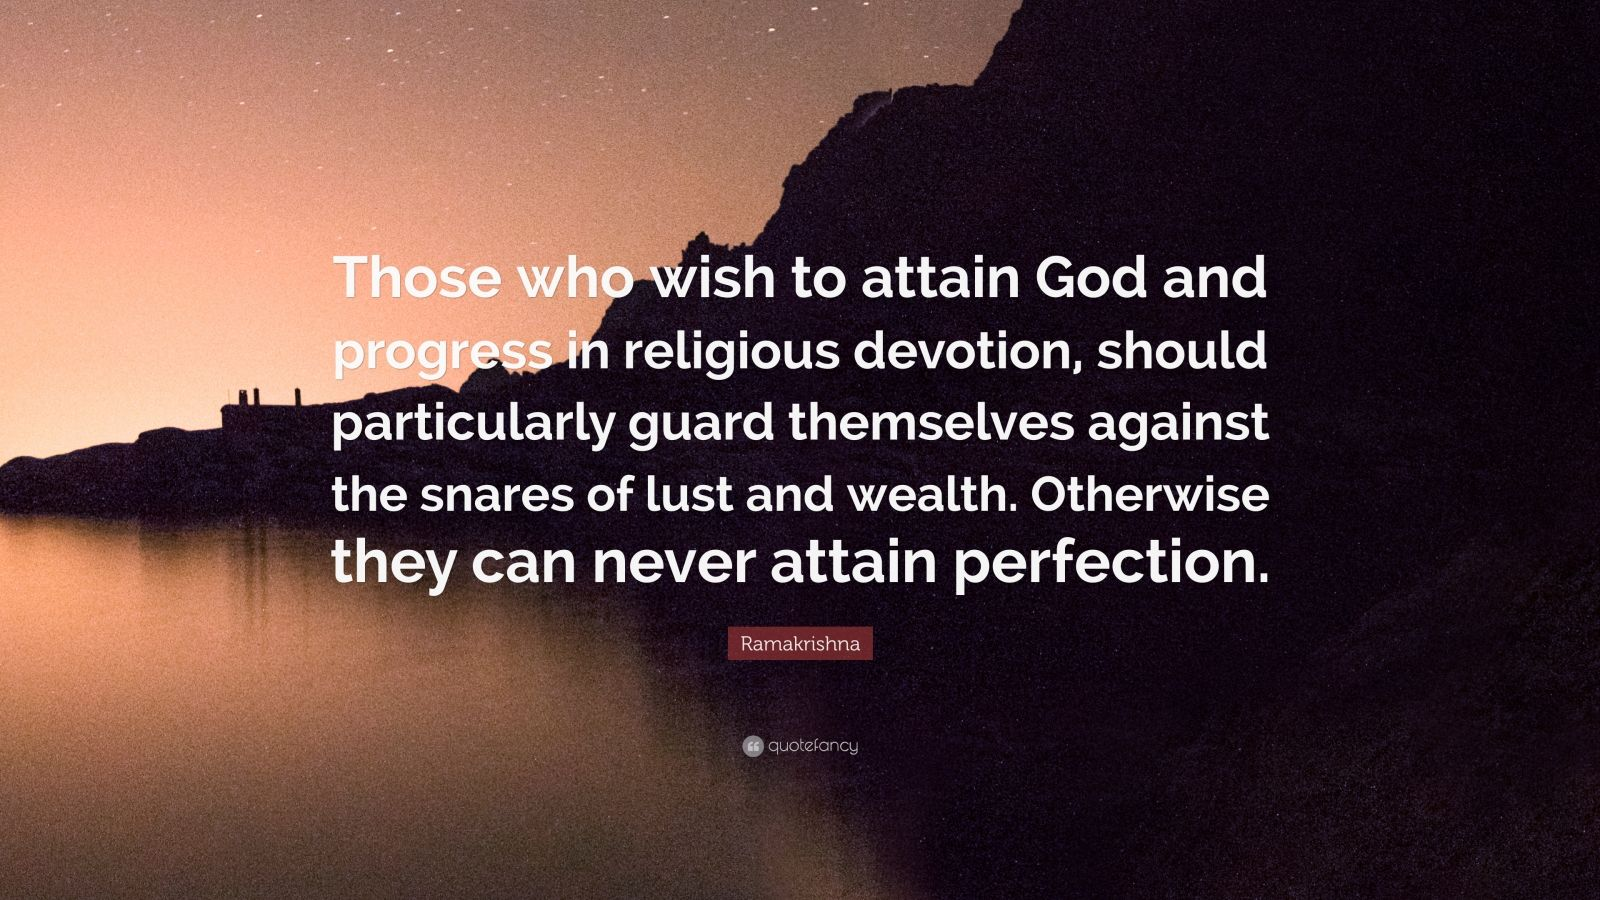 """Ramakrishna Quote: """"Those who wish to attain God and progress in religious devotion, should particularly guard themselves against the snares of lust and wealth. Otherwise they can never attain perfection."""""""